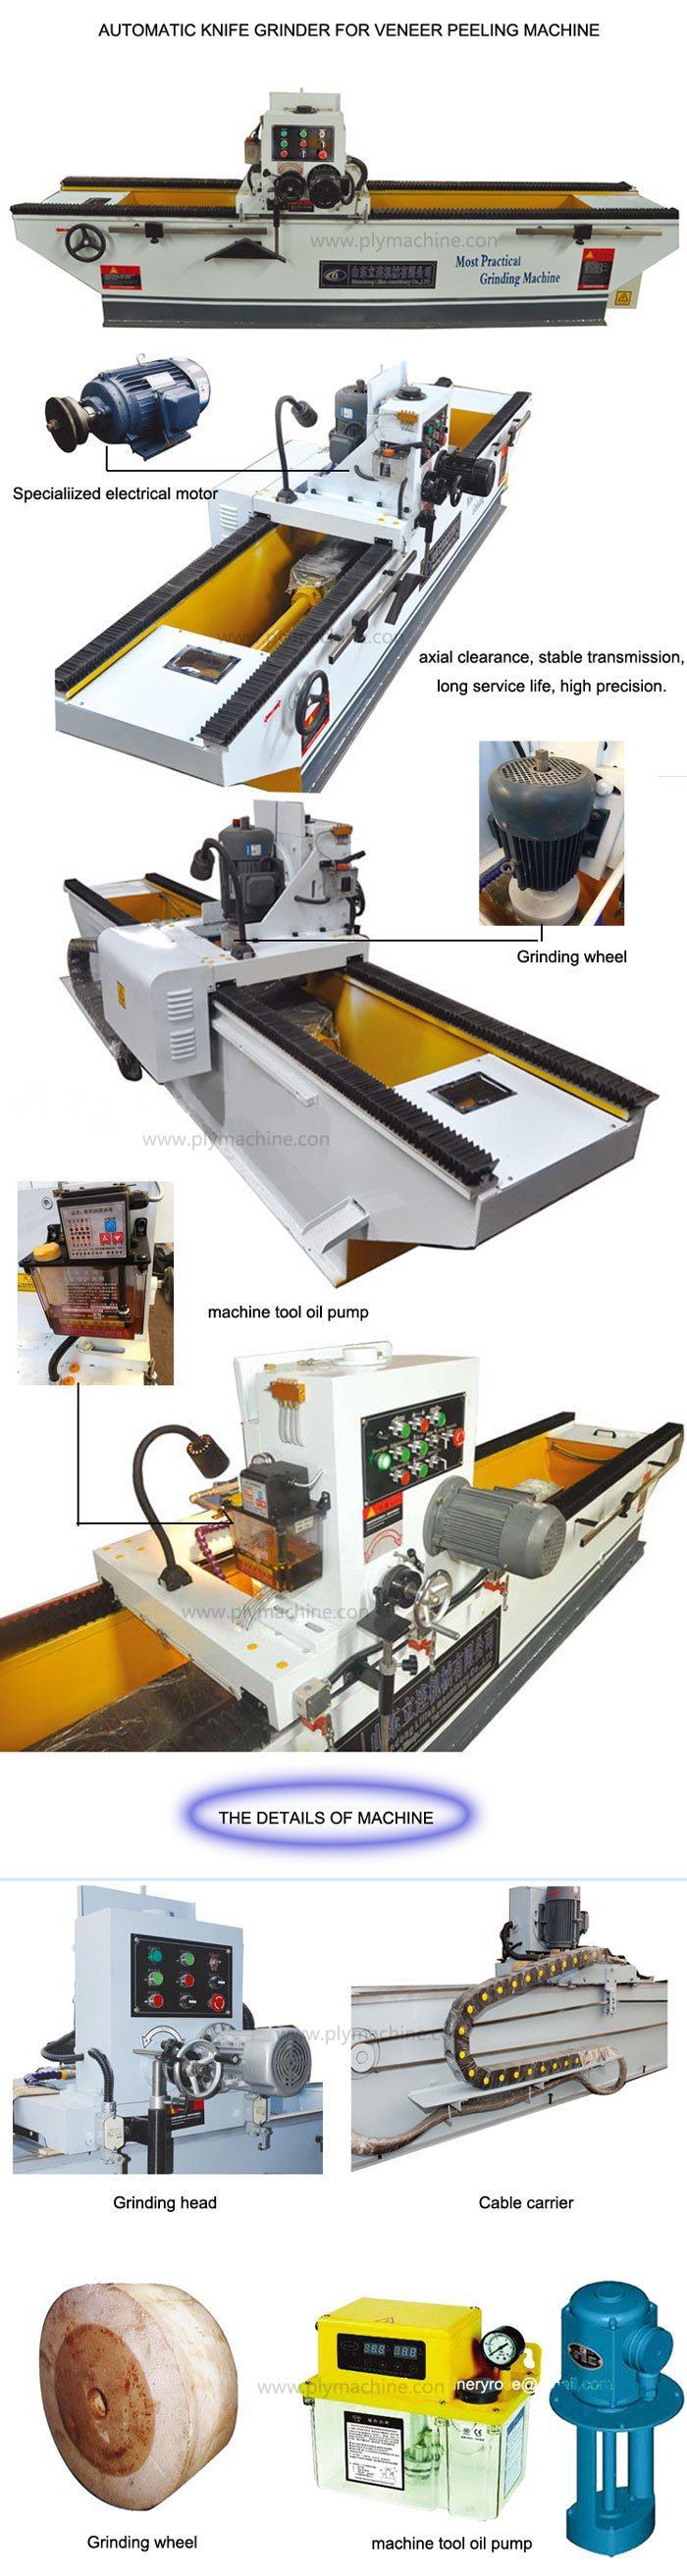 Knife-Grinding-Machine.jpg